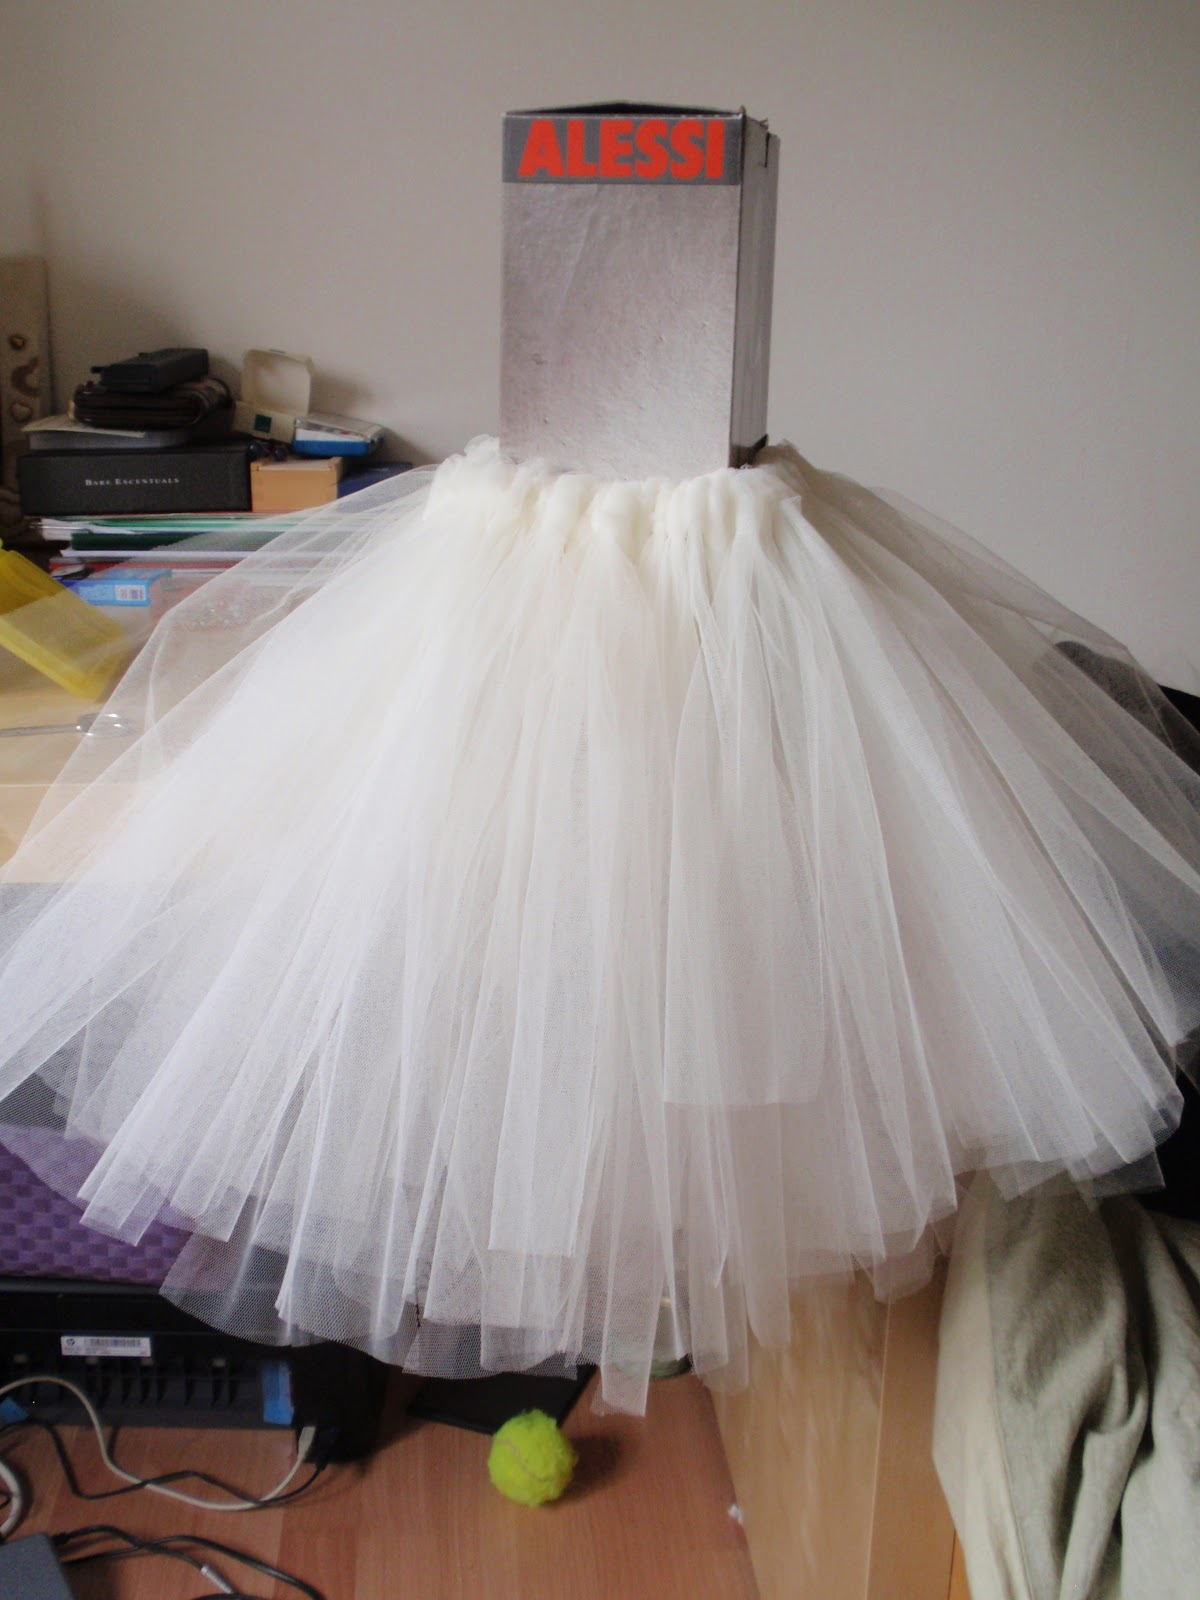 pulmonates design  architecture blog Wedding inspiration _ DIY flower girl ballerina tutu